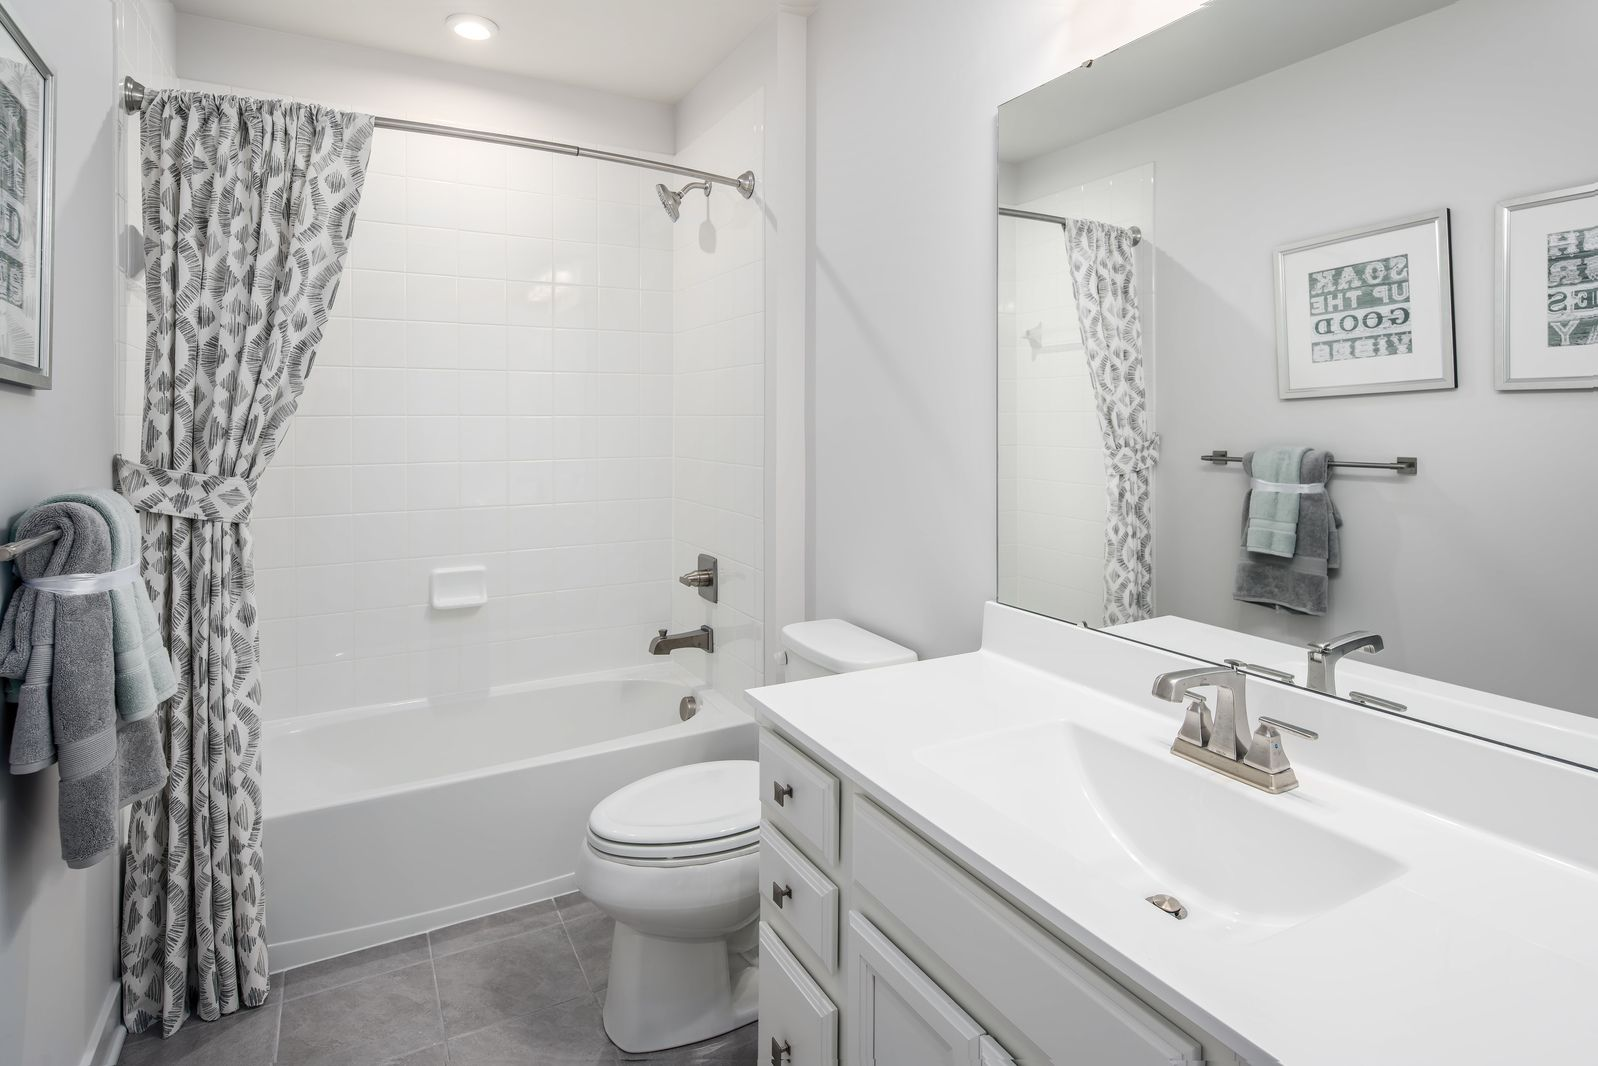 Bathroom featured in the Ballenger By Ryan Homes in Cincinnati, OH